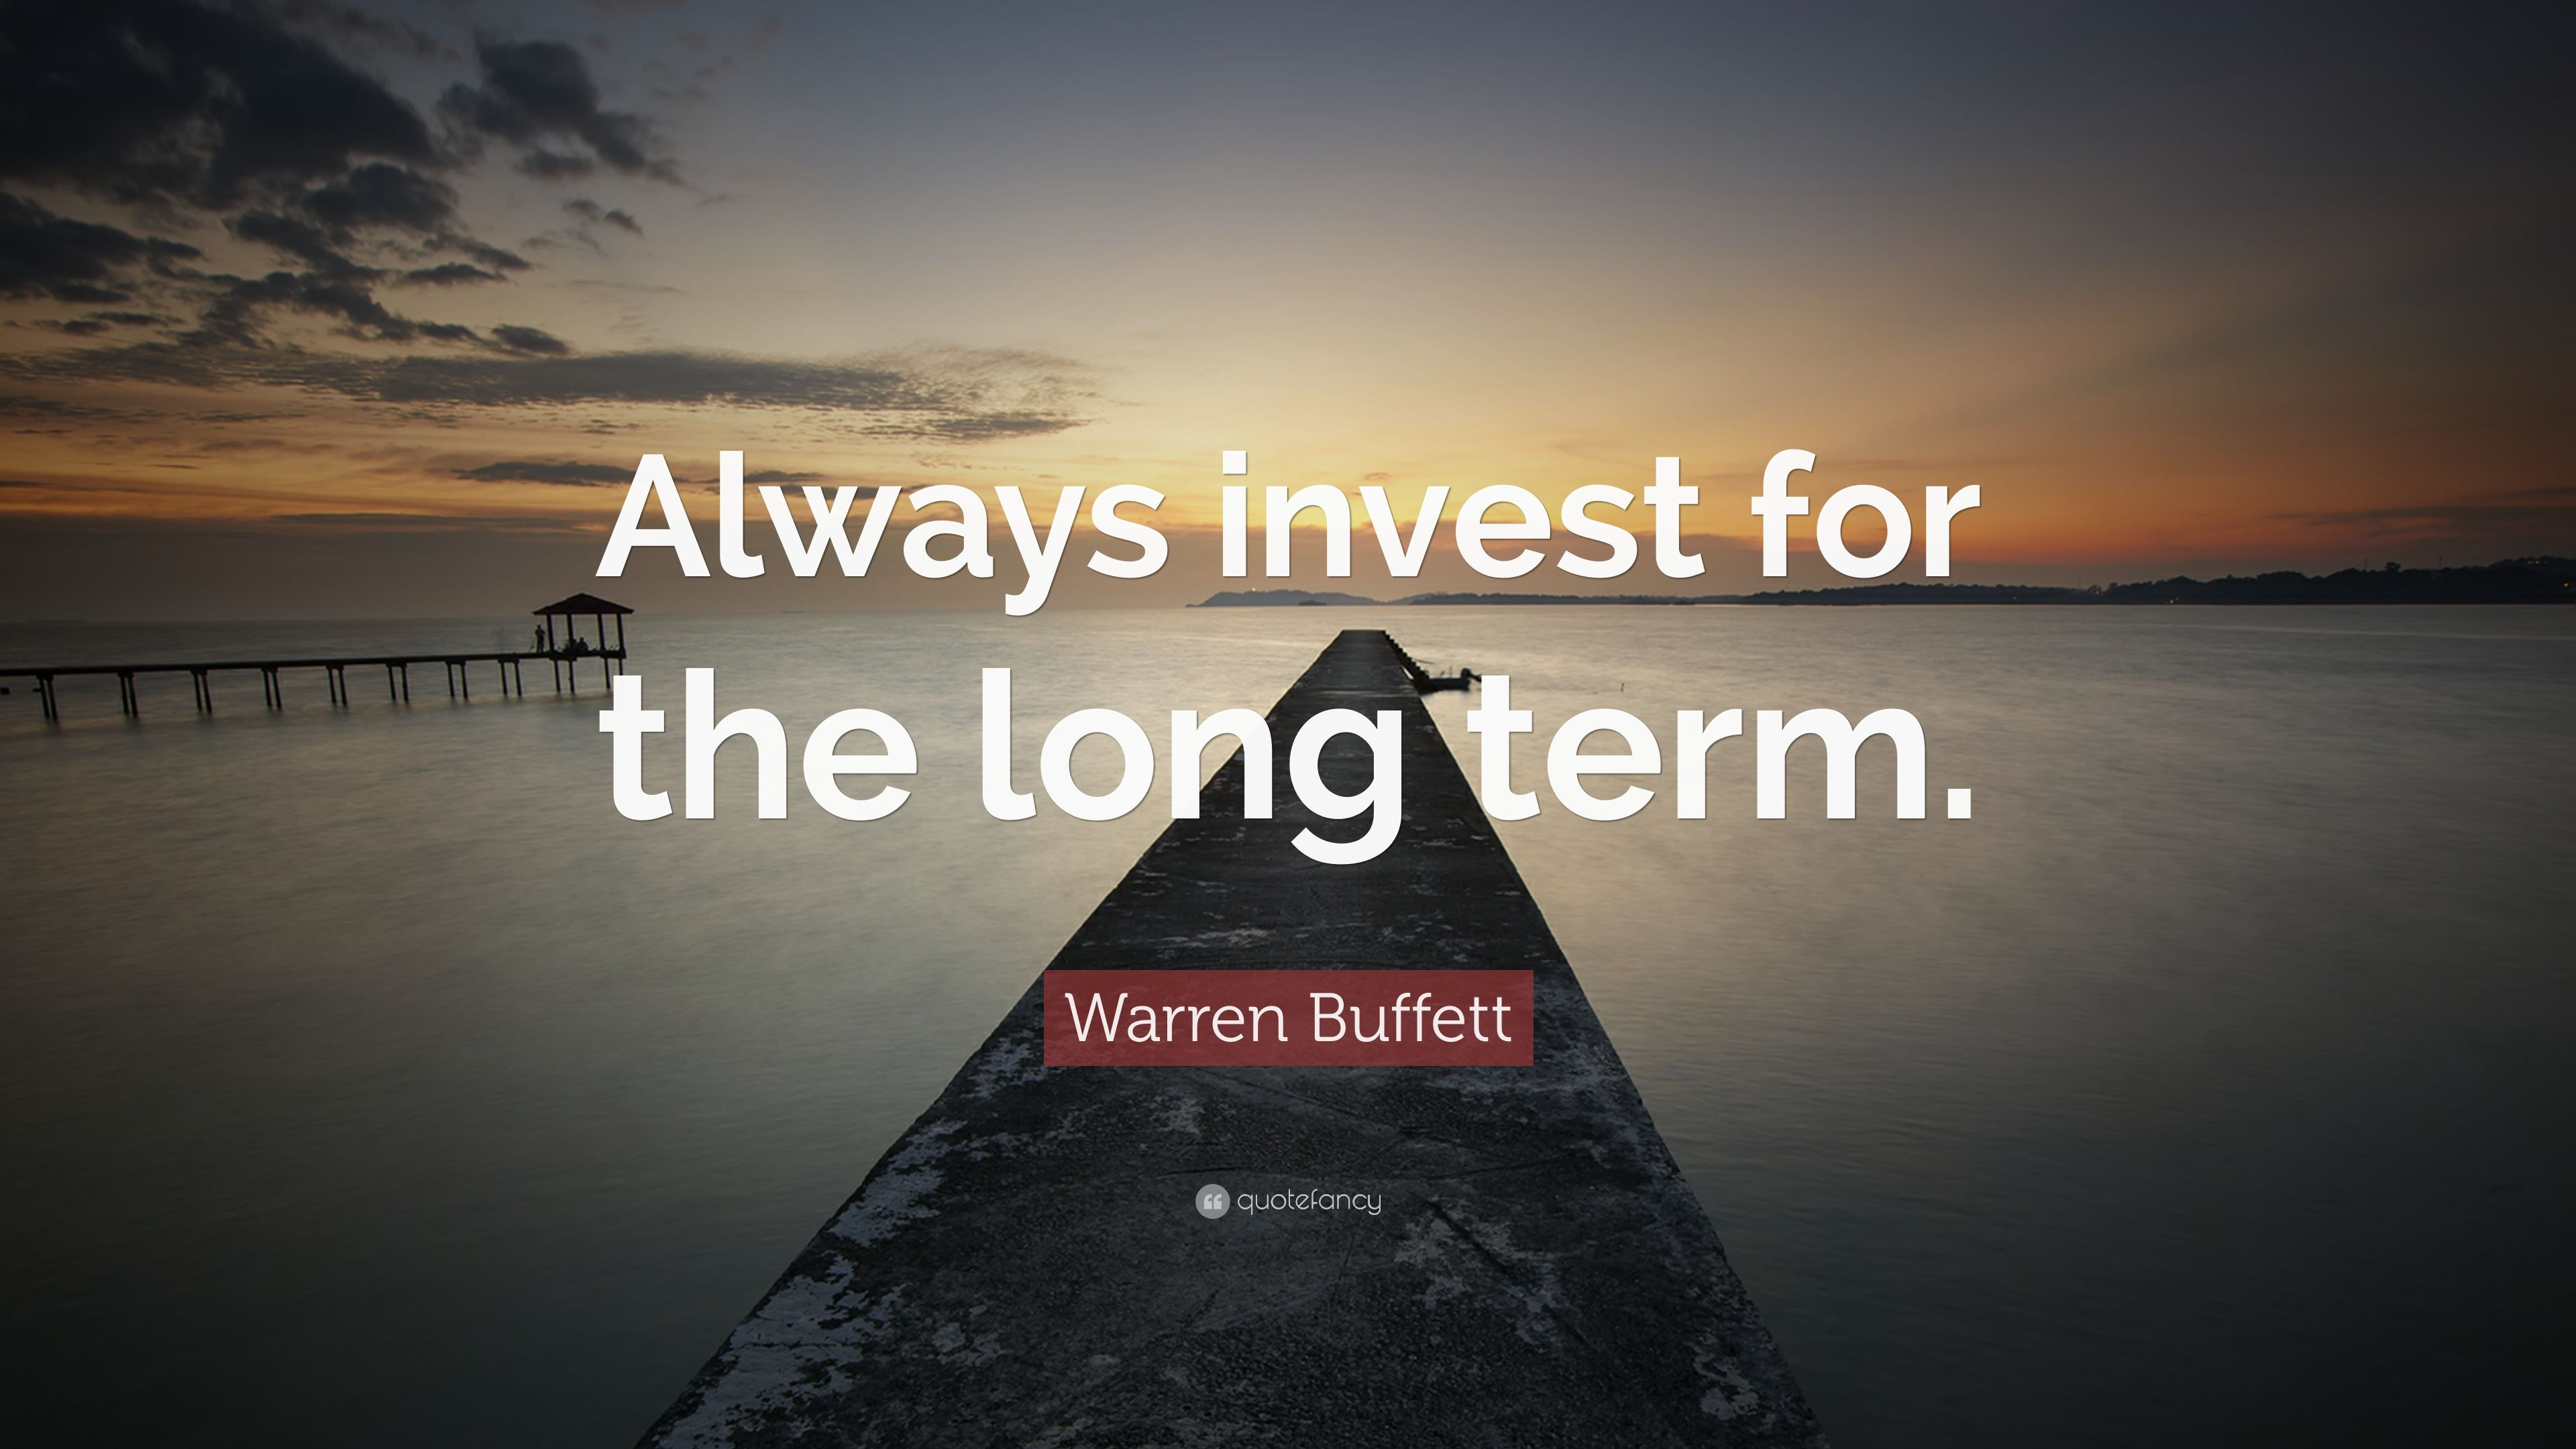 Investment Wallpapers   Top Investment Backgrounds 3840x2160